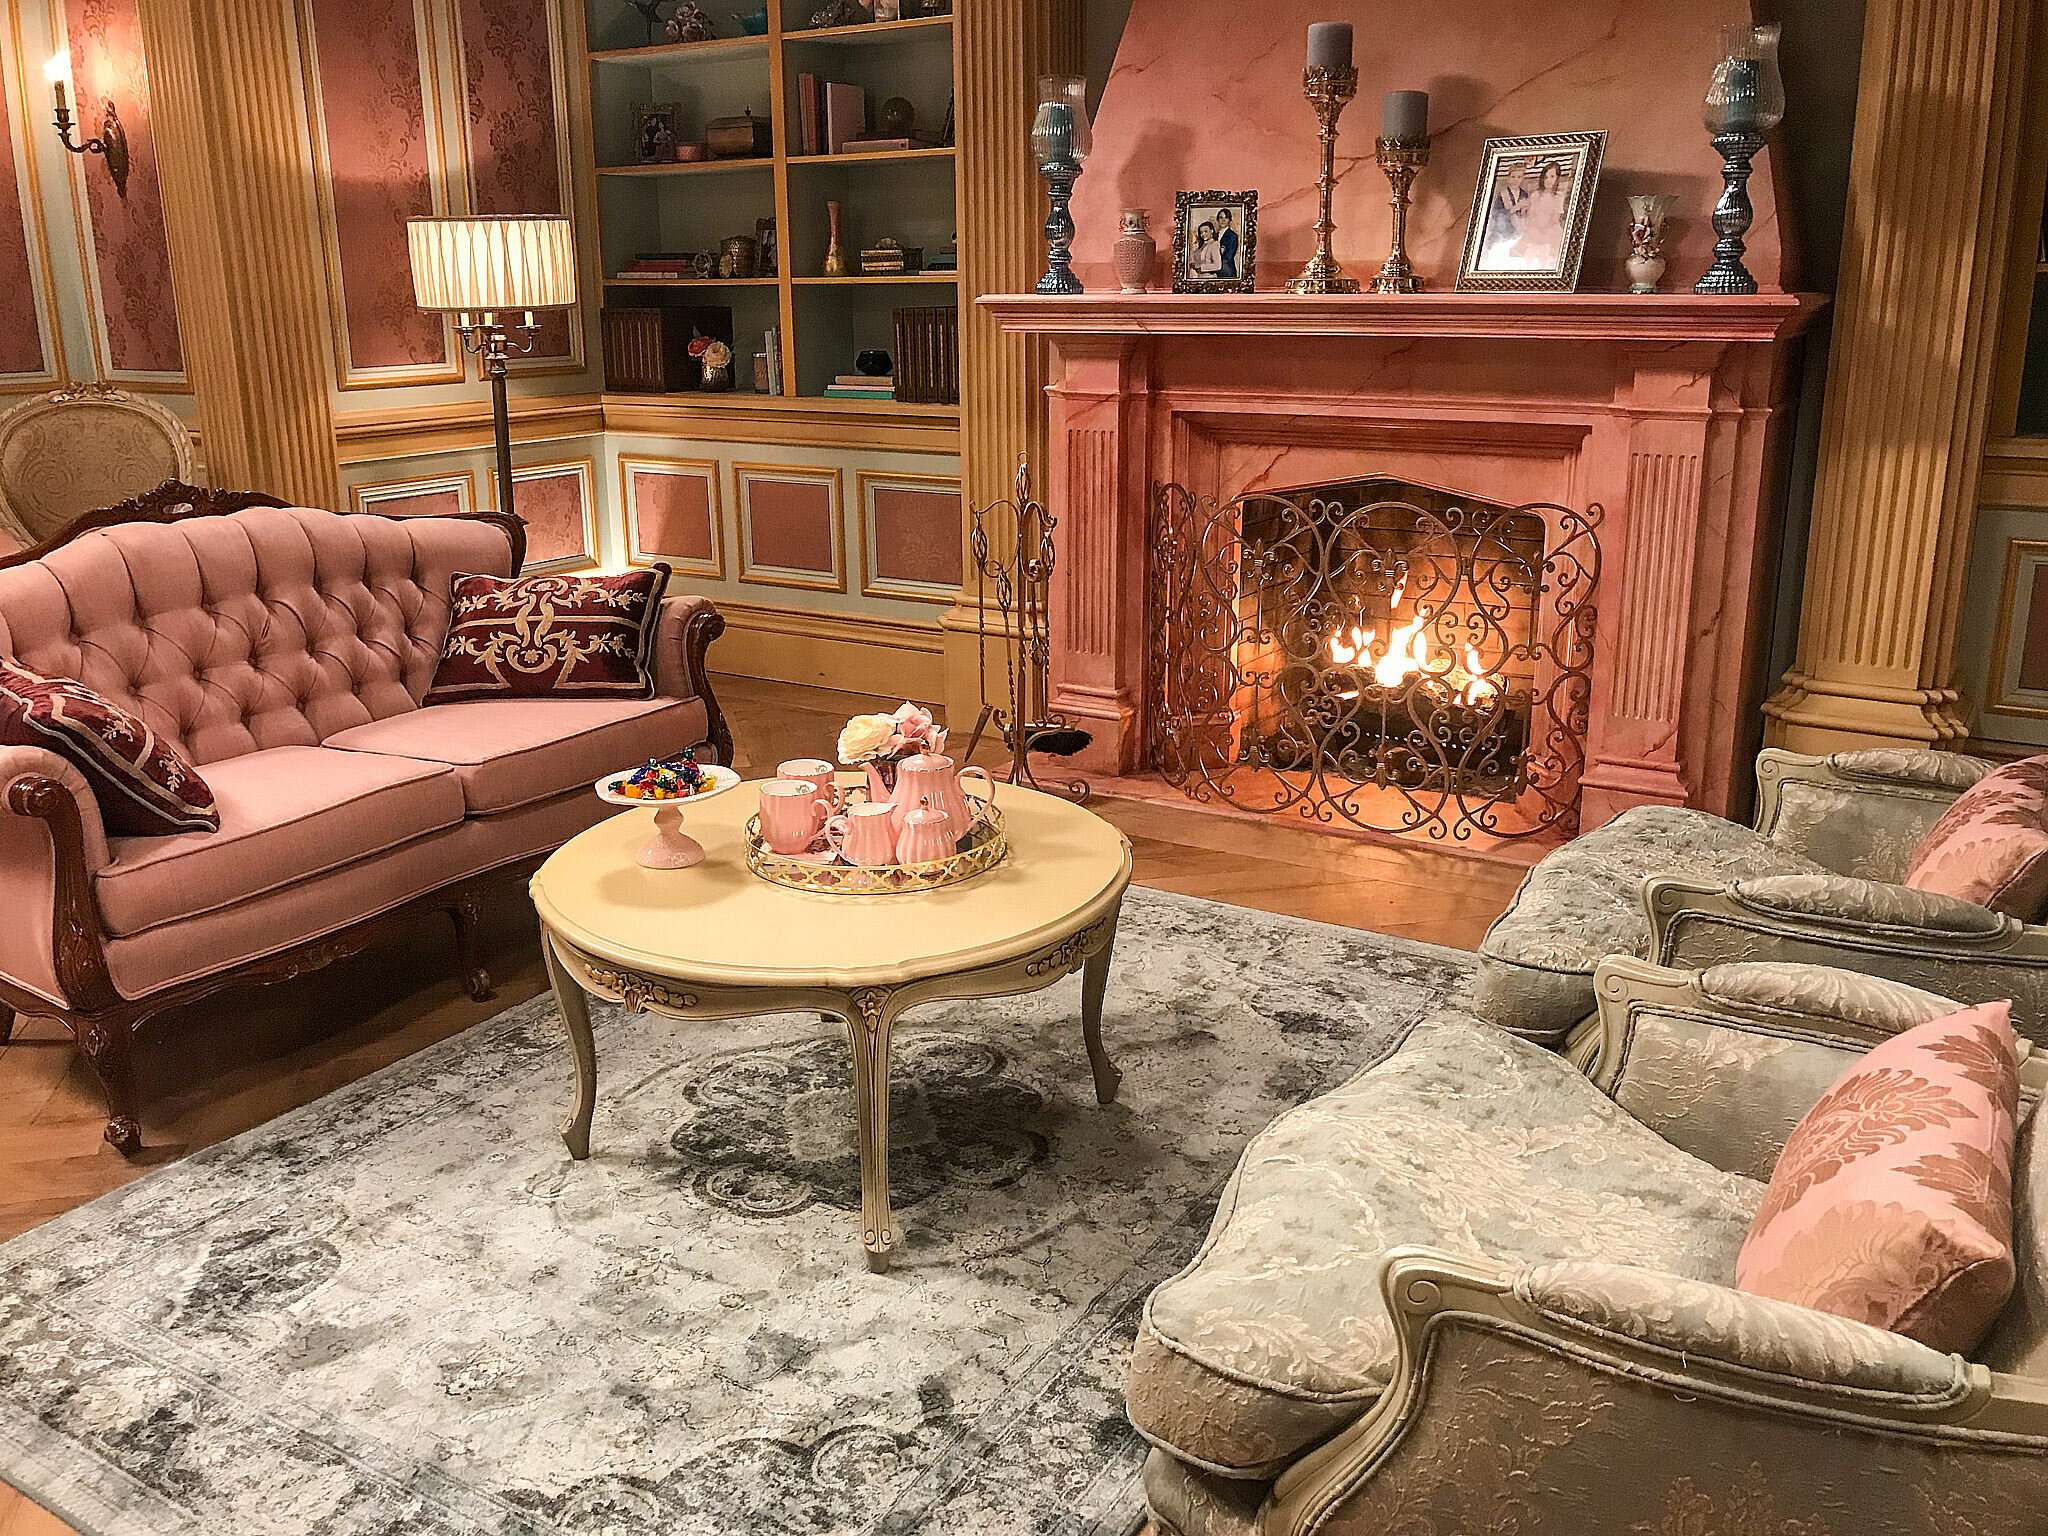 A detail of the functioning pink marble fireplace and sitting area in Audrey's bedroom set.